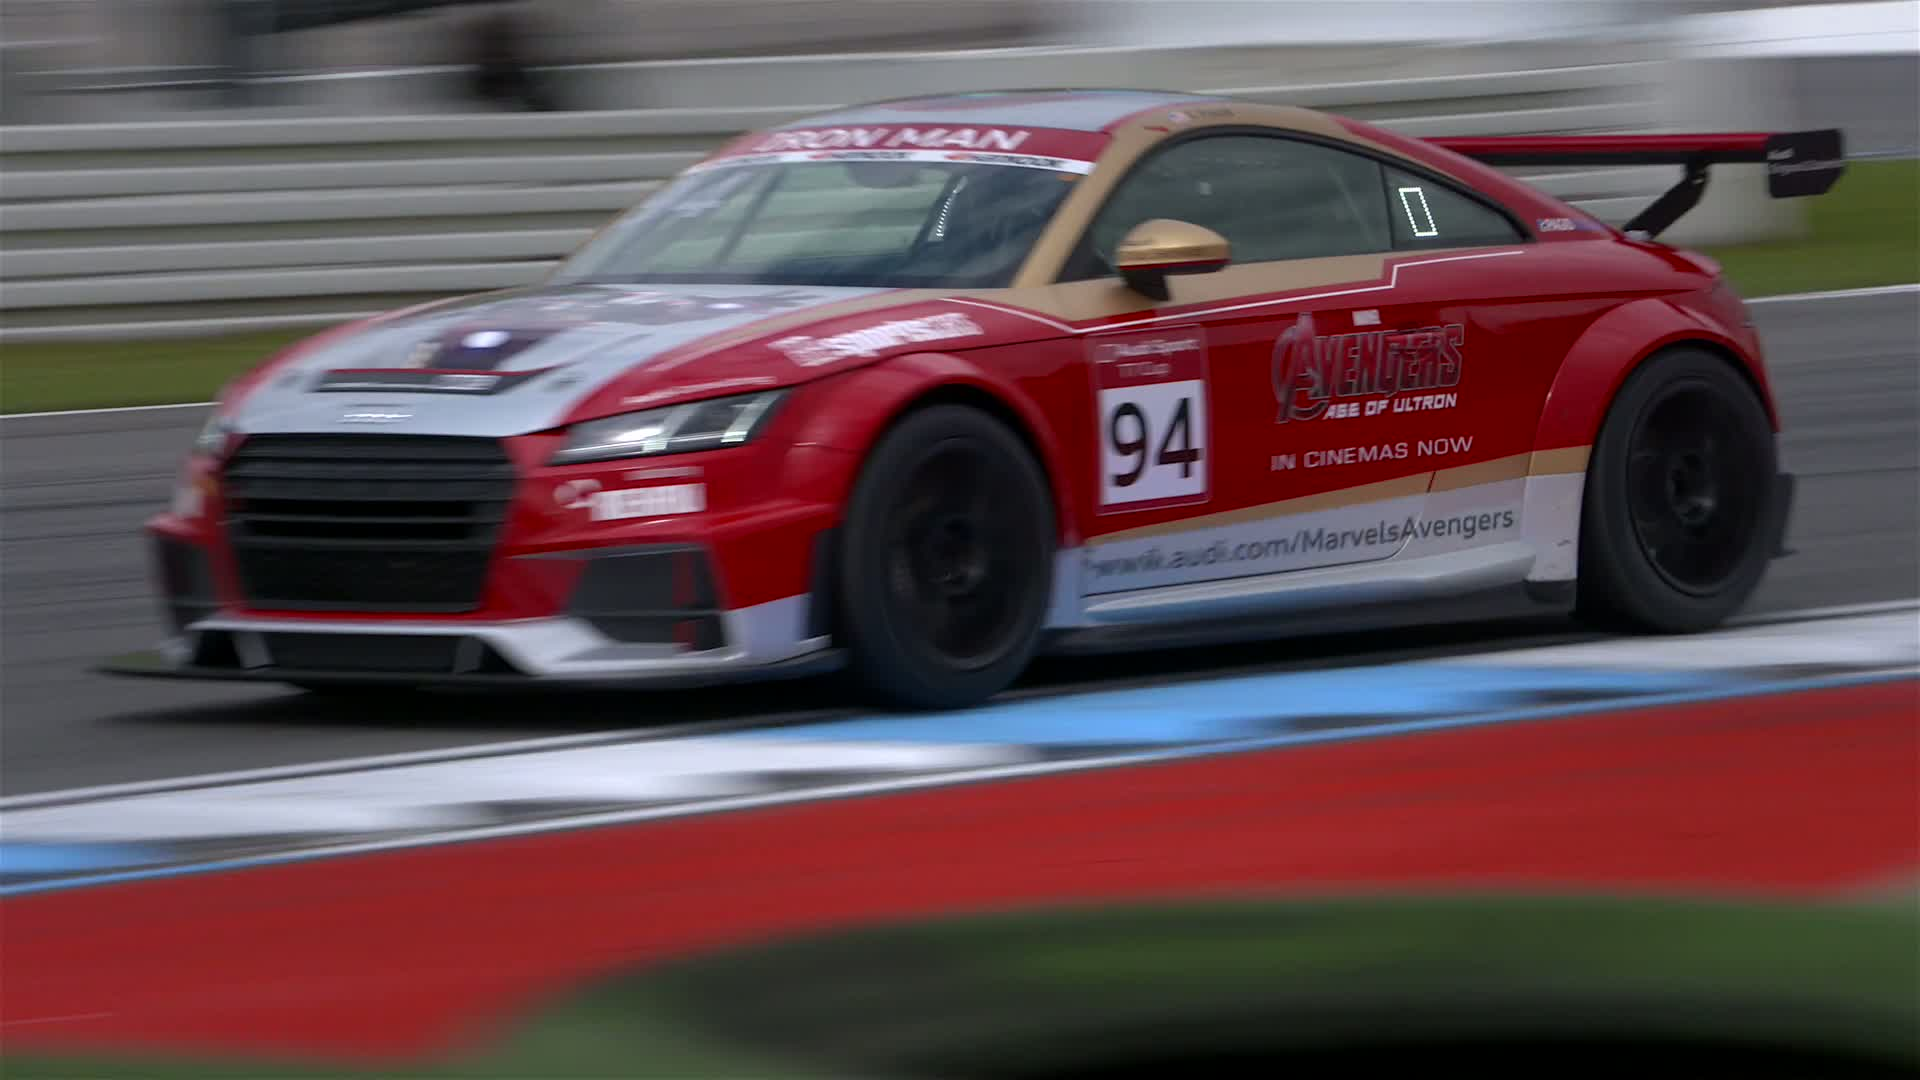 60 Seconds of Audi Sport 14/2015 - Audi Sport TT Cup, World Premiere